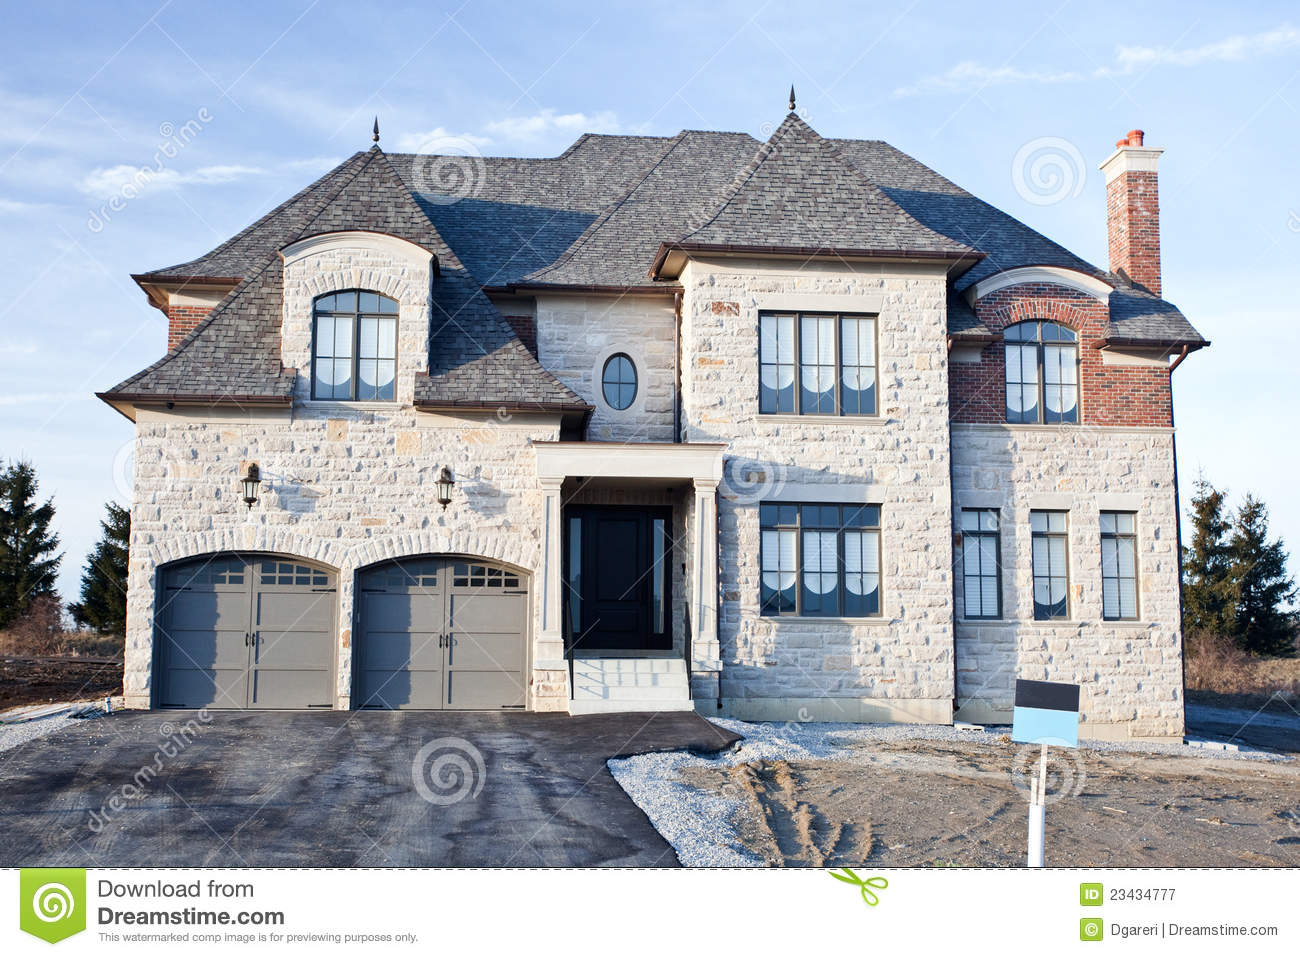 Luxury homes royalty free stock photography image 23434777 for Free luxury home images